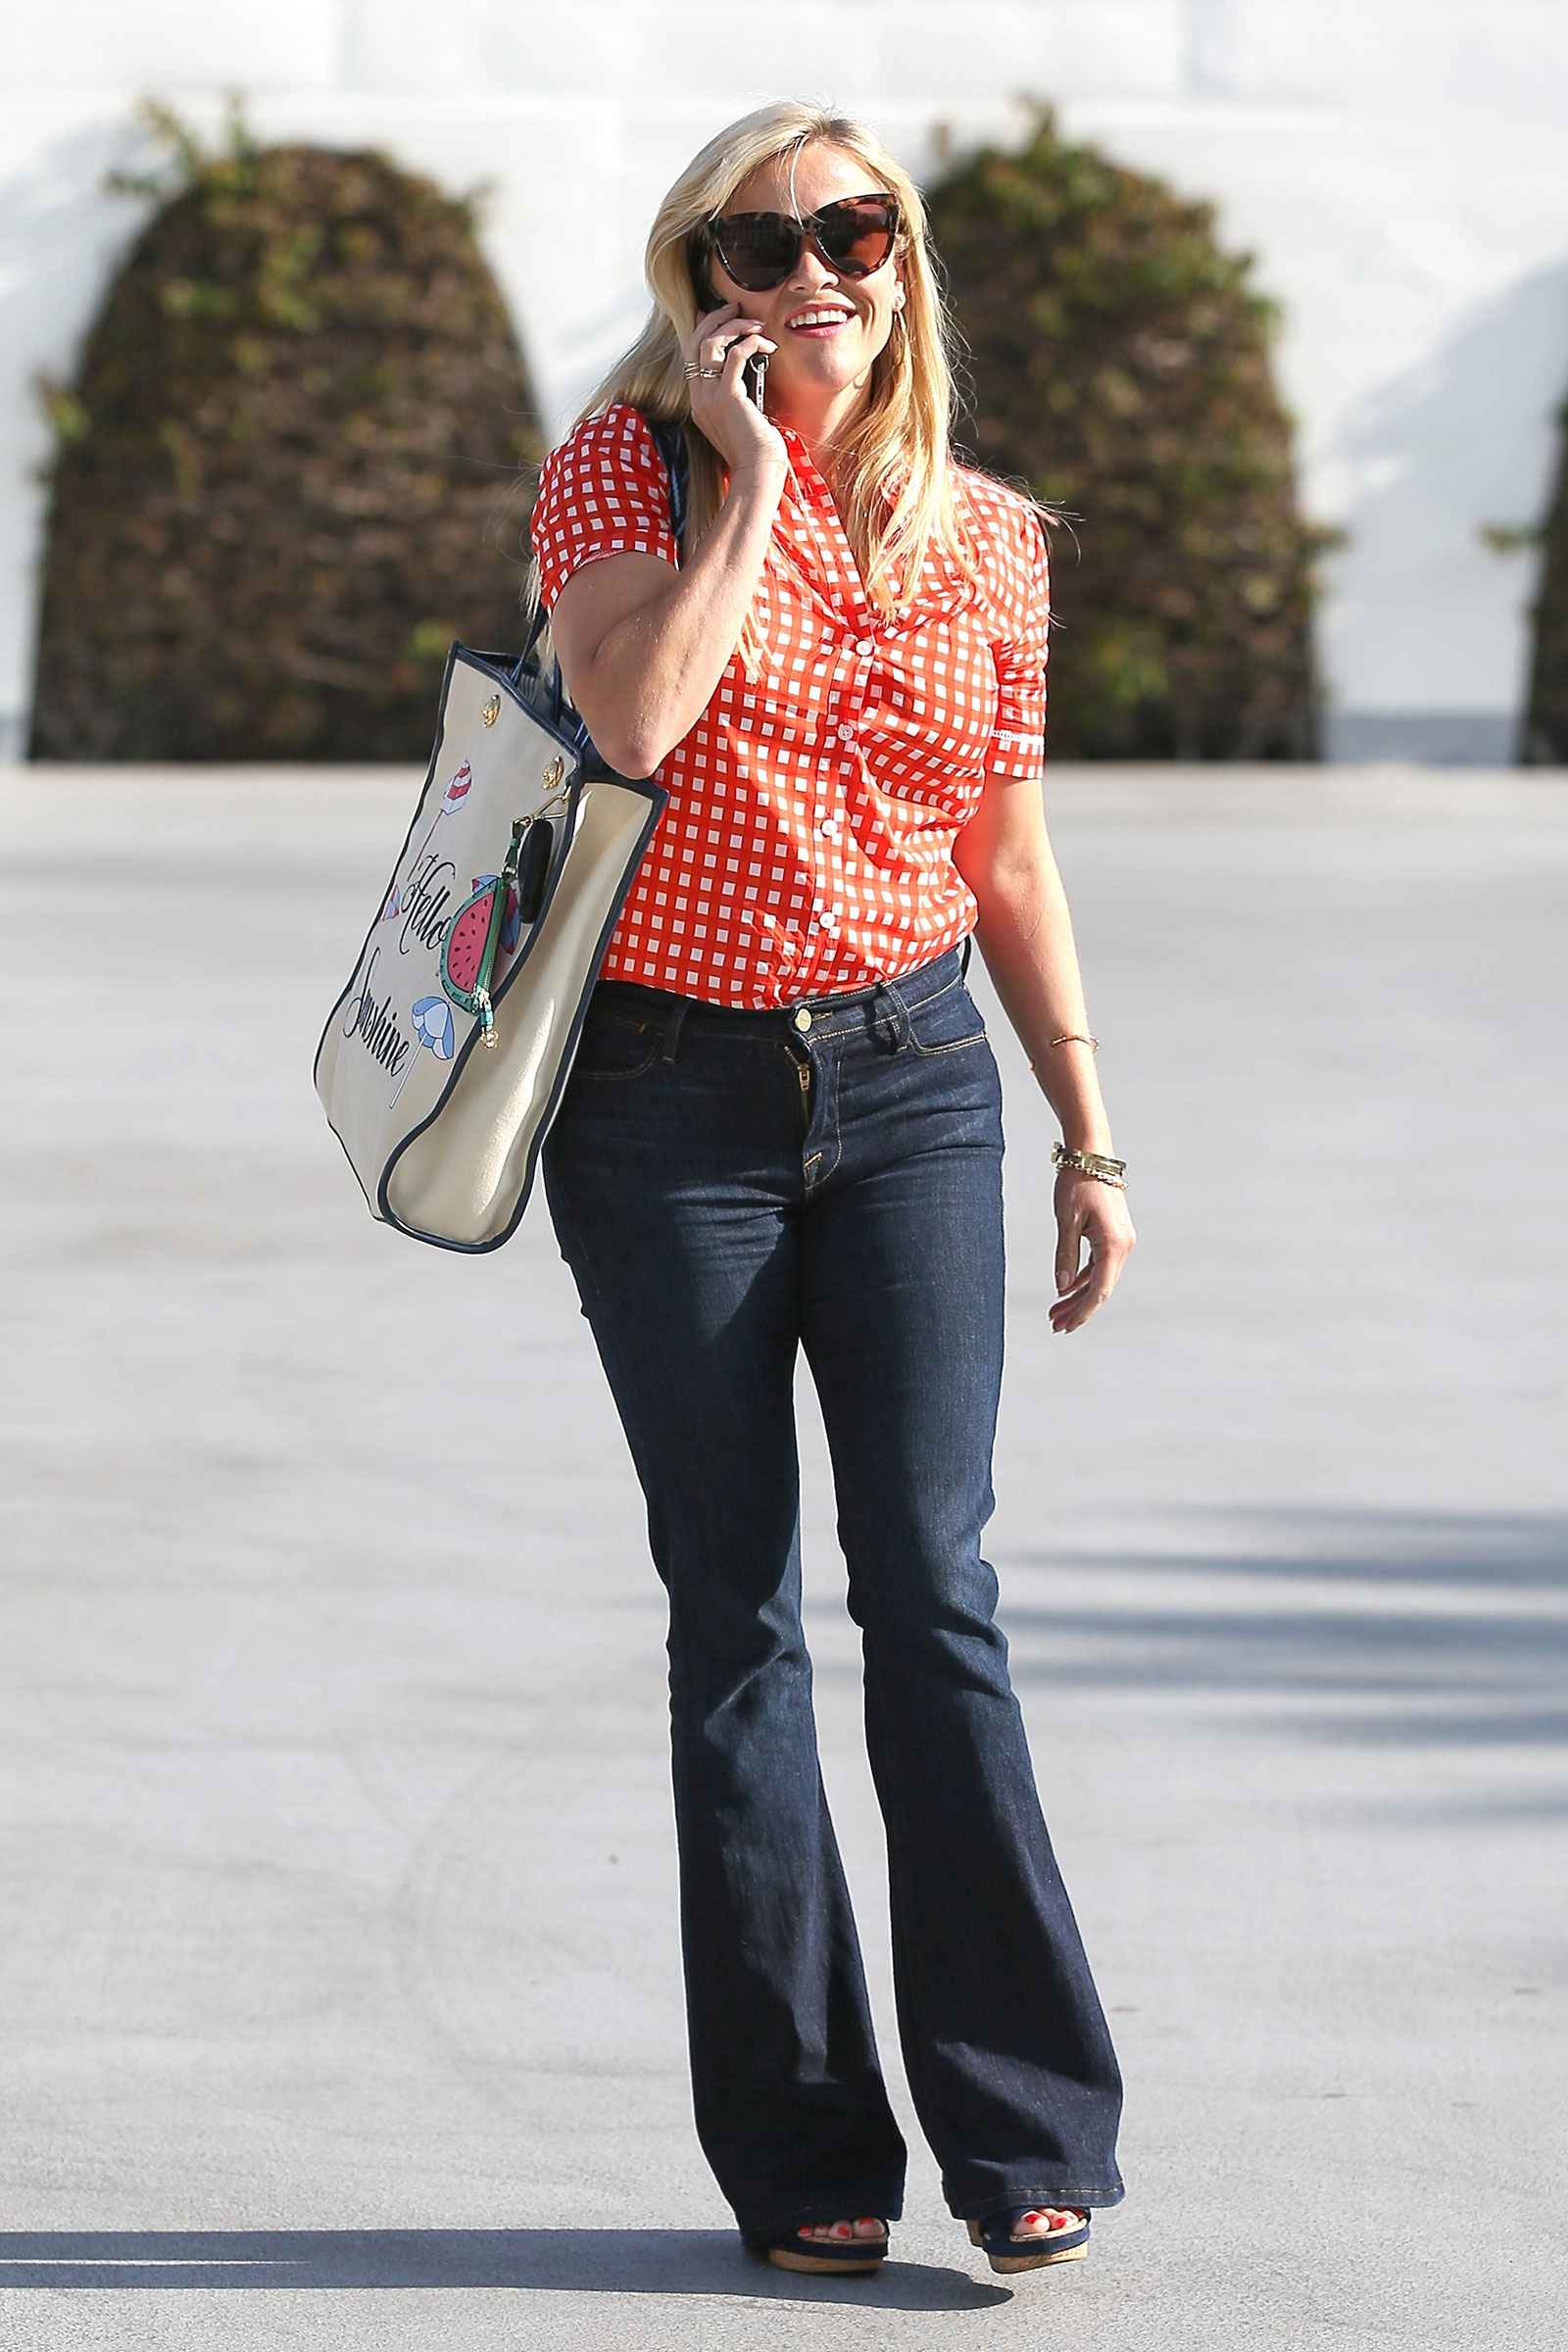 Reese Witherspoon is summery in a red gingham shirt, flare jeans and wedge sandals.